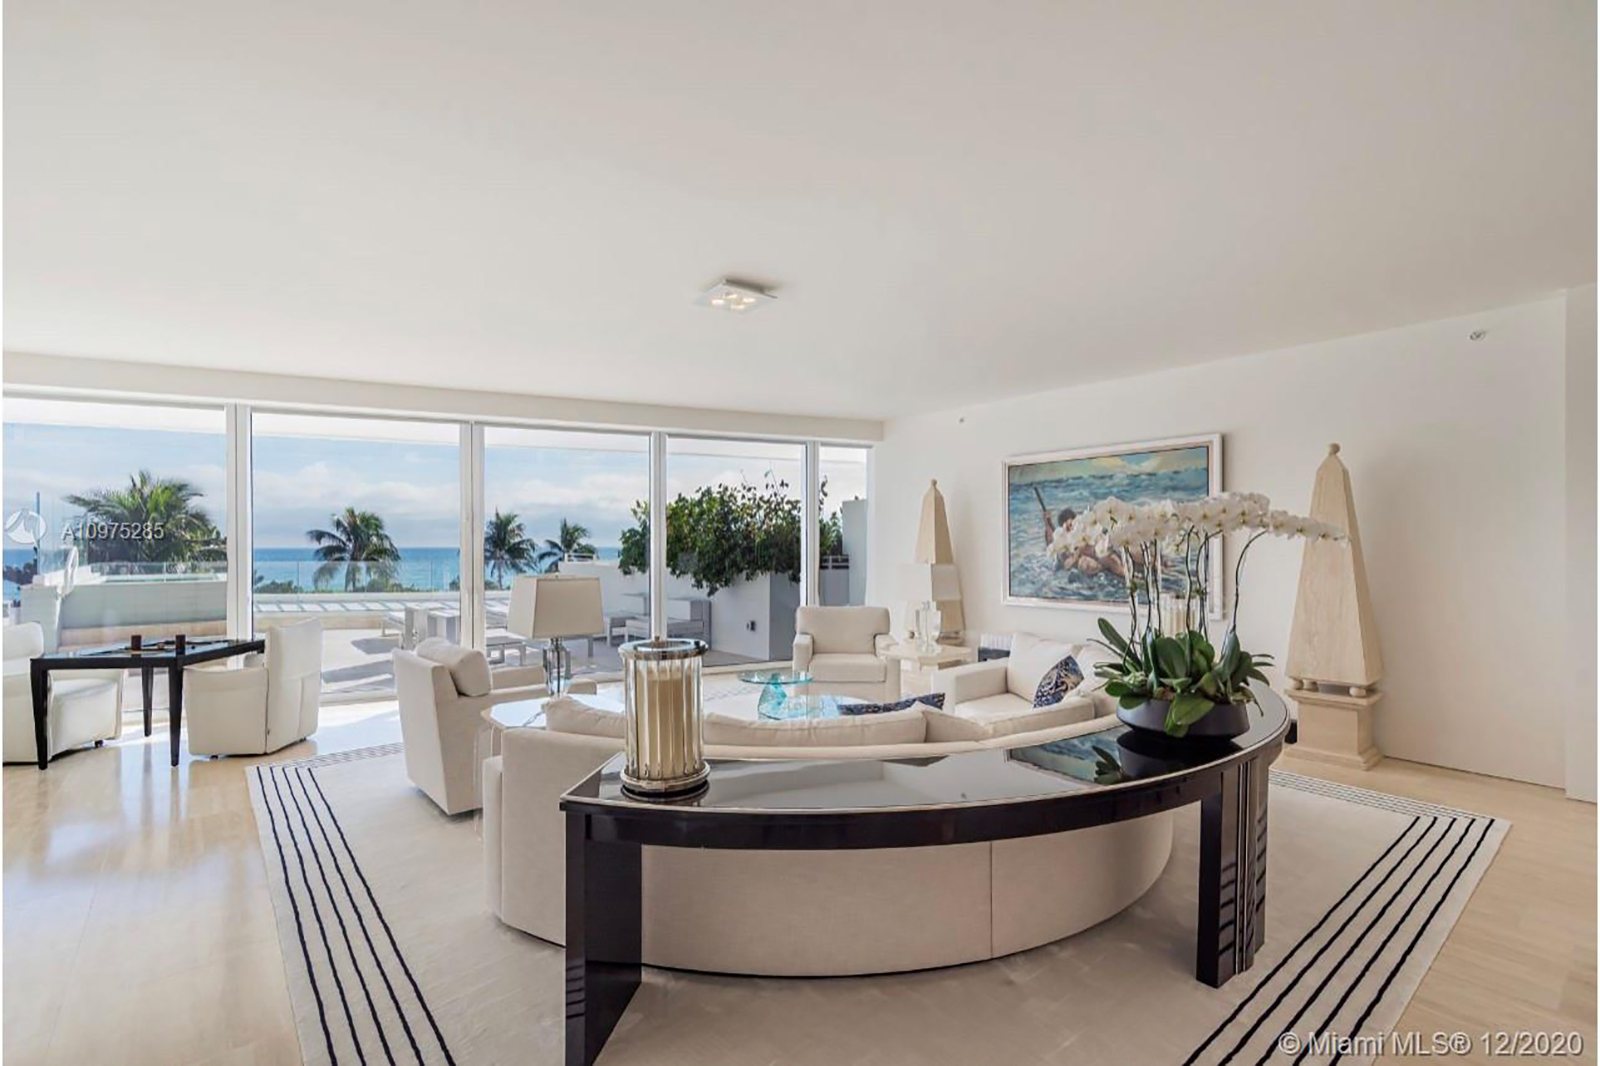 view from within s-205 featuring an open floor plan with white furniture and black tables and orchids over with a view of palm trees and Miami beach.